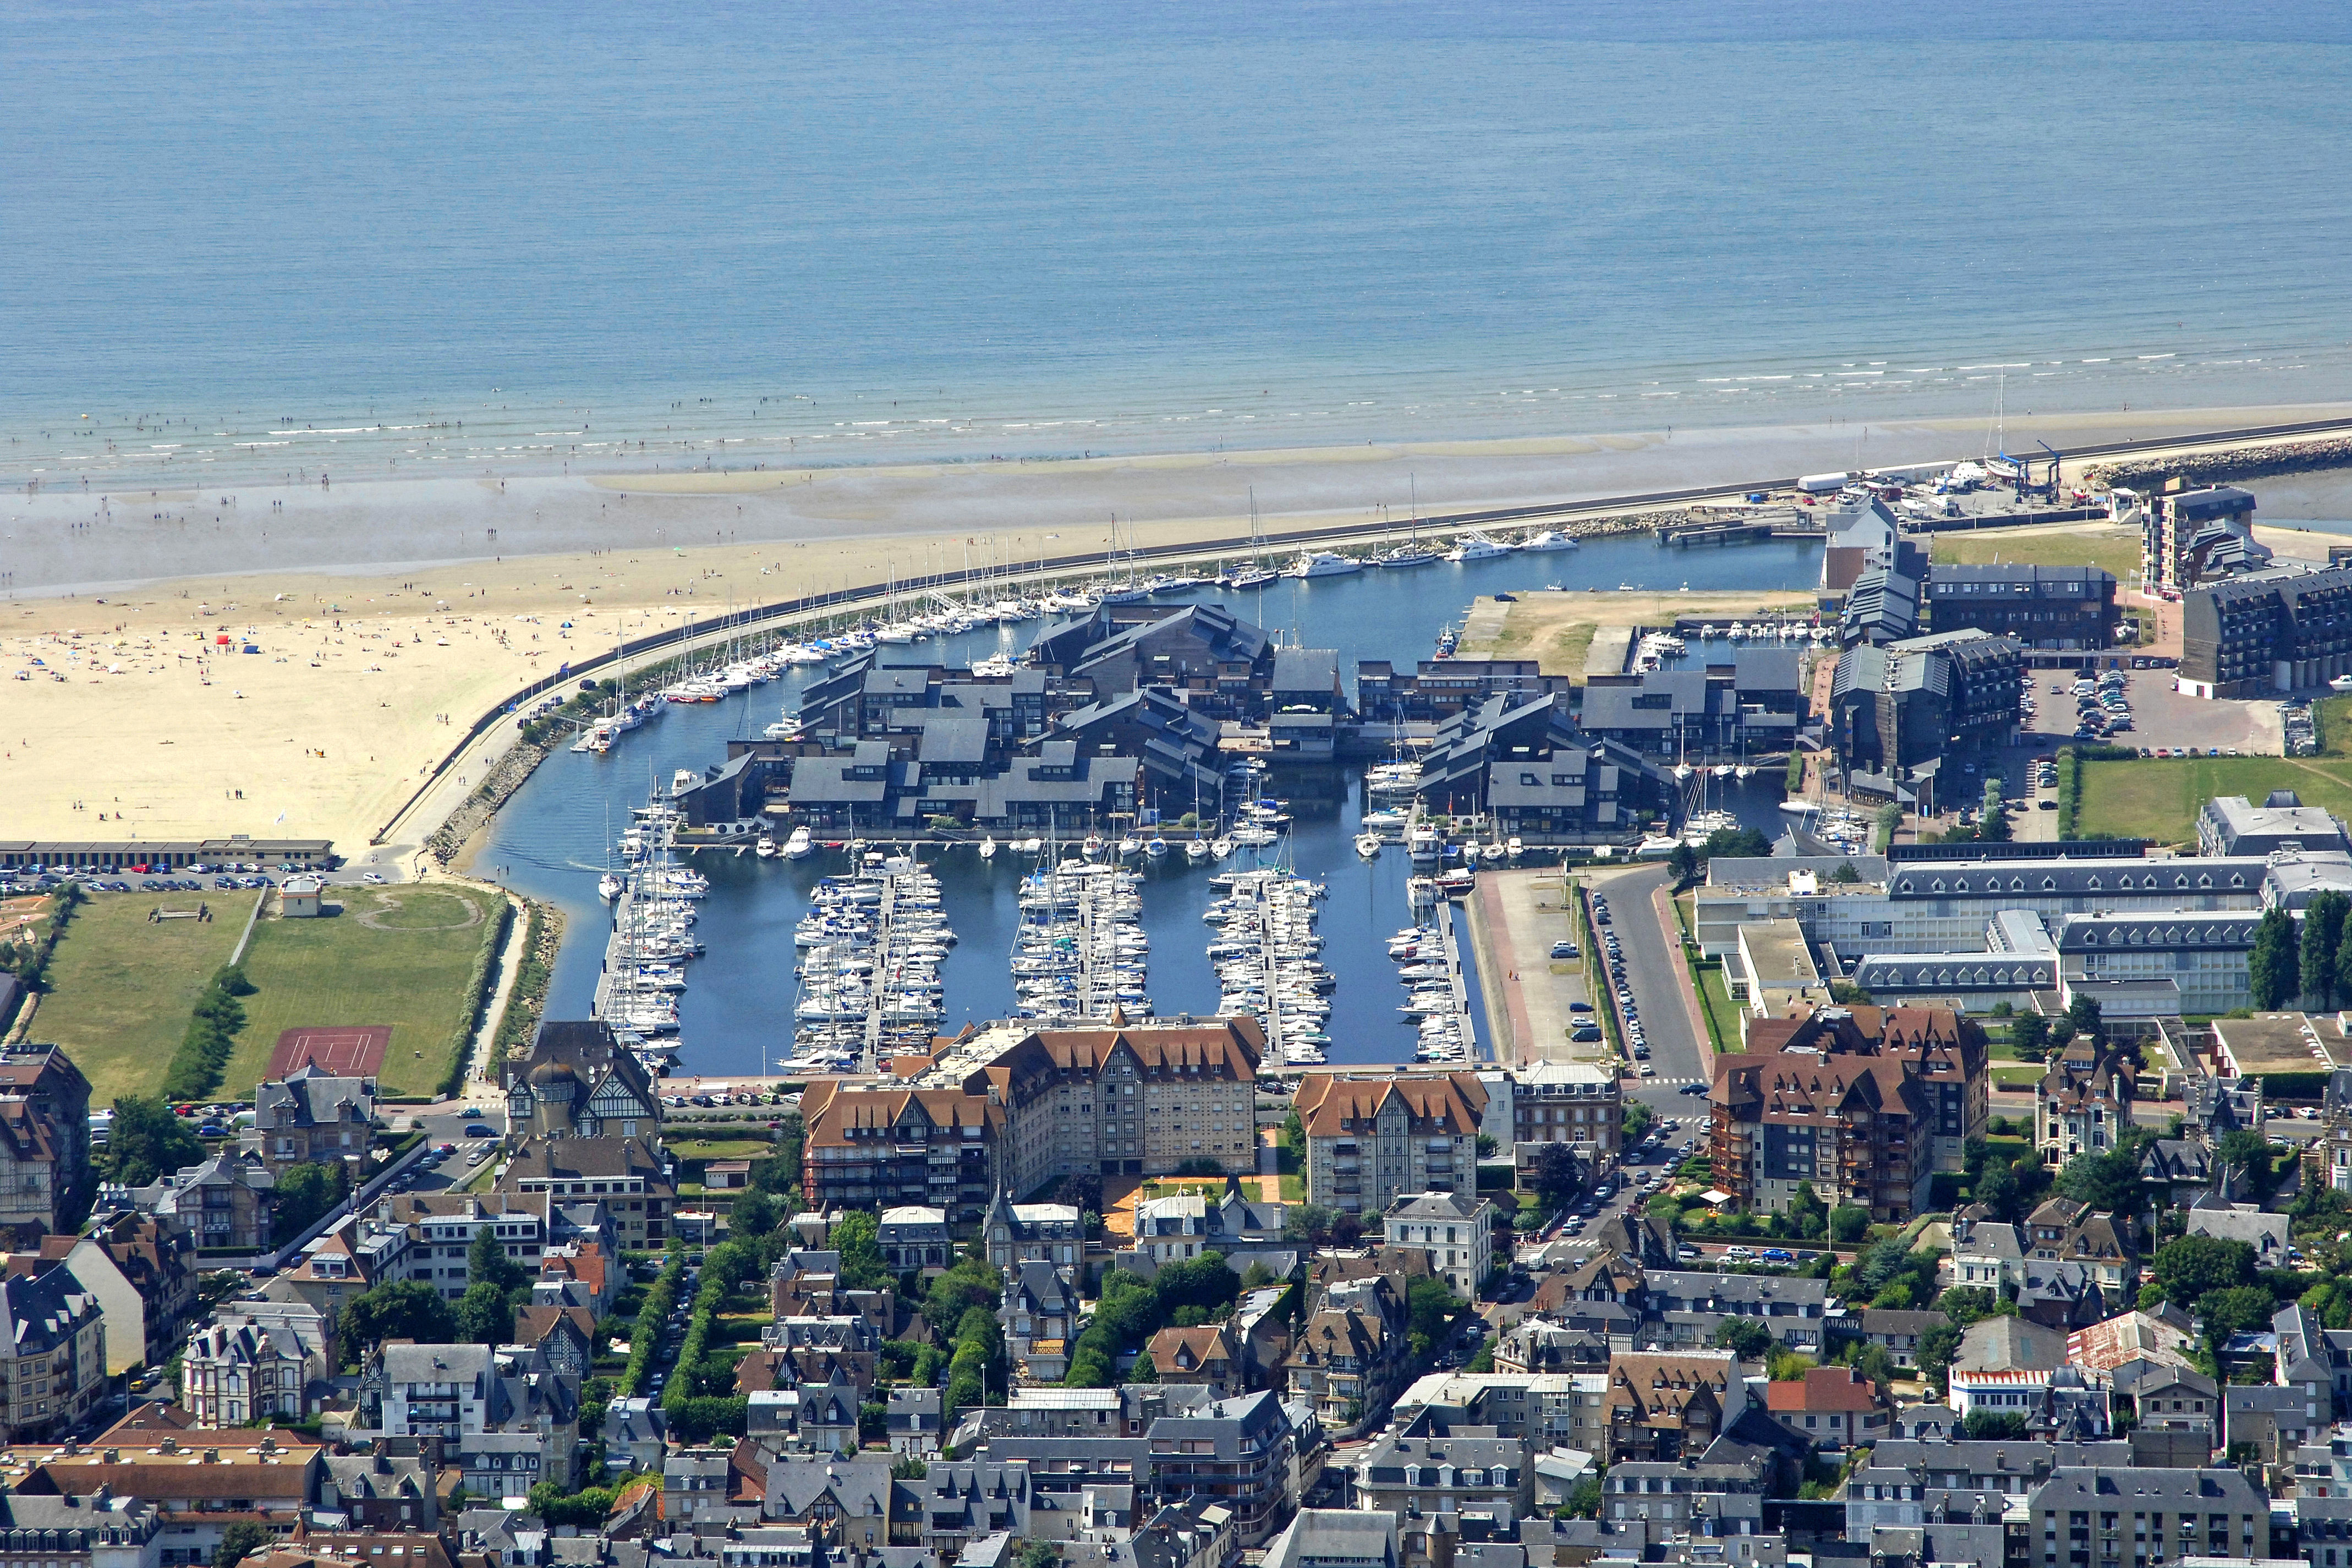 Deauville Marina in Deauville, France - Marina Reviews - Phone Number - Marinas.com